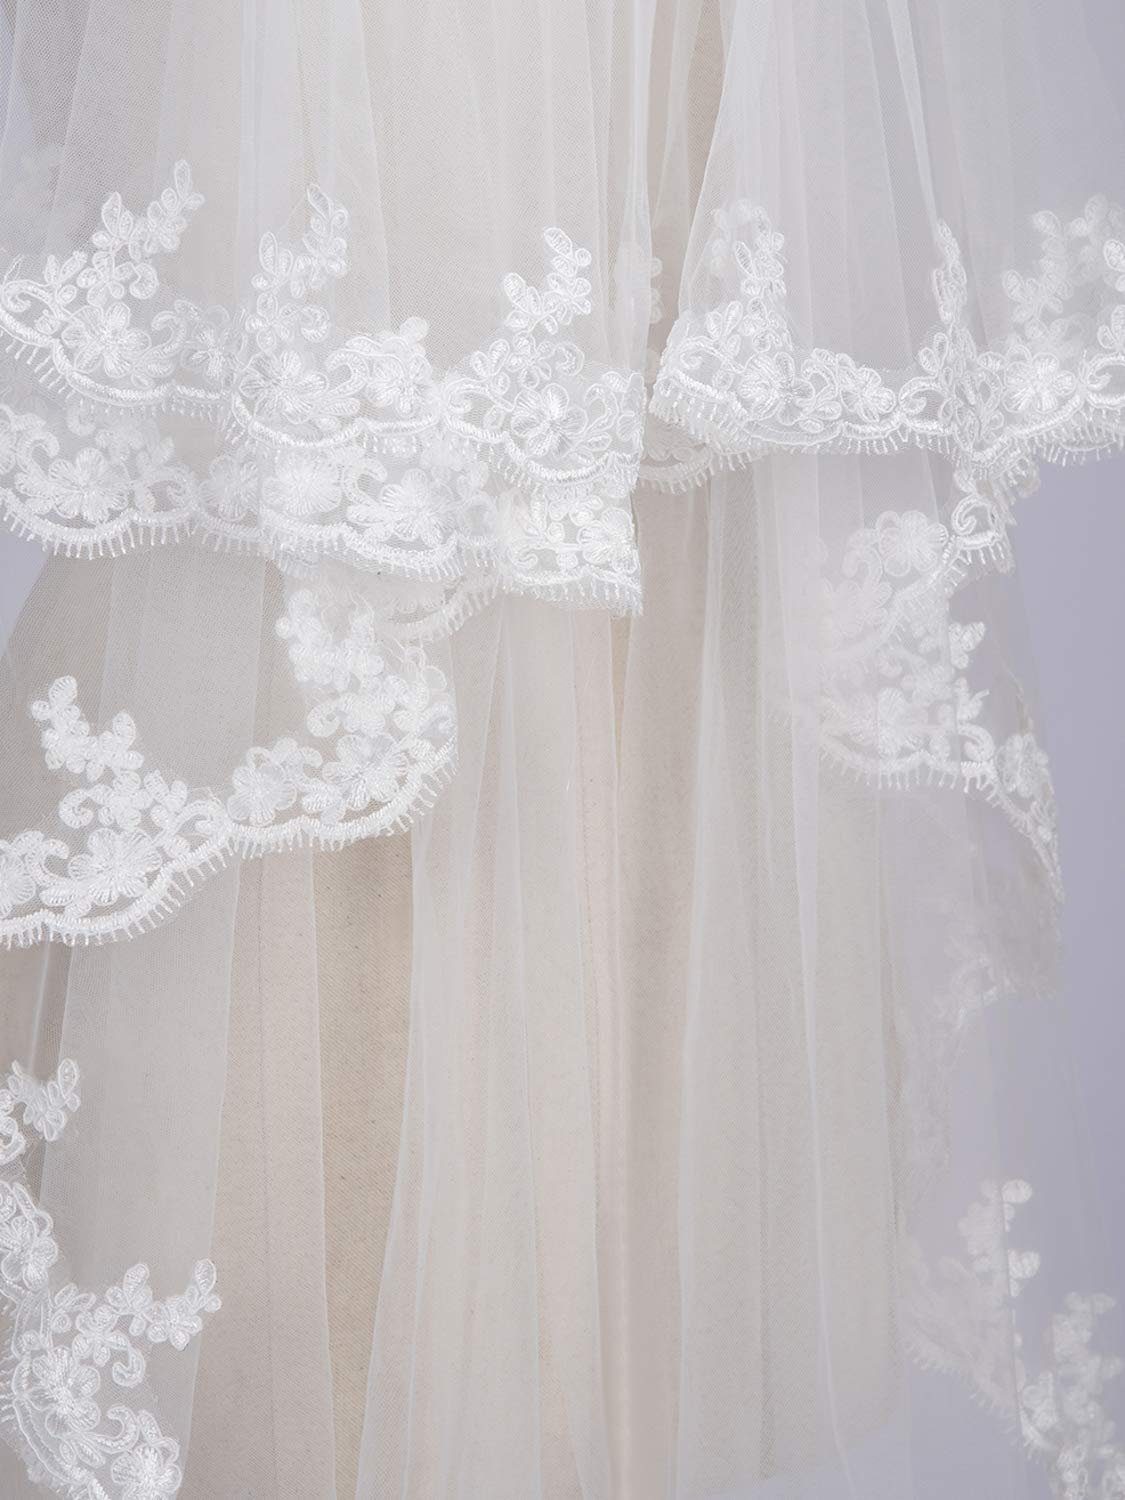 Women's Bridal Tulle Veils with Comb Lace Edge Wedding Veils for Bride,White by MisShow (Image #6)